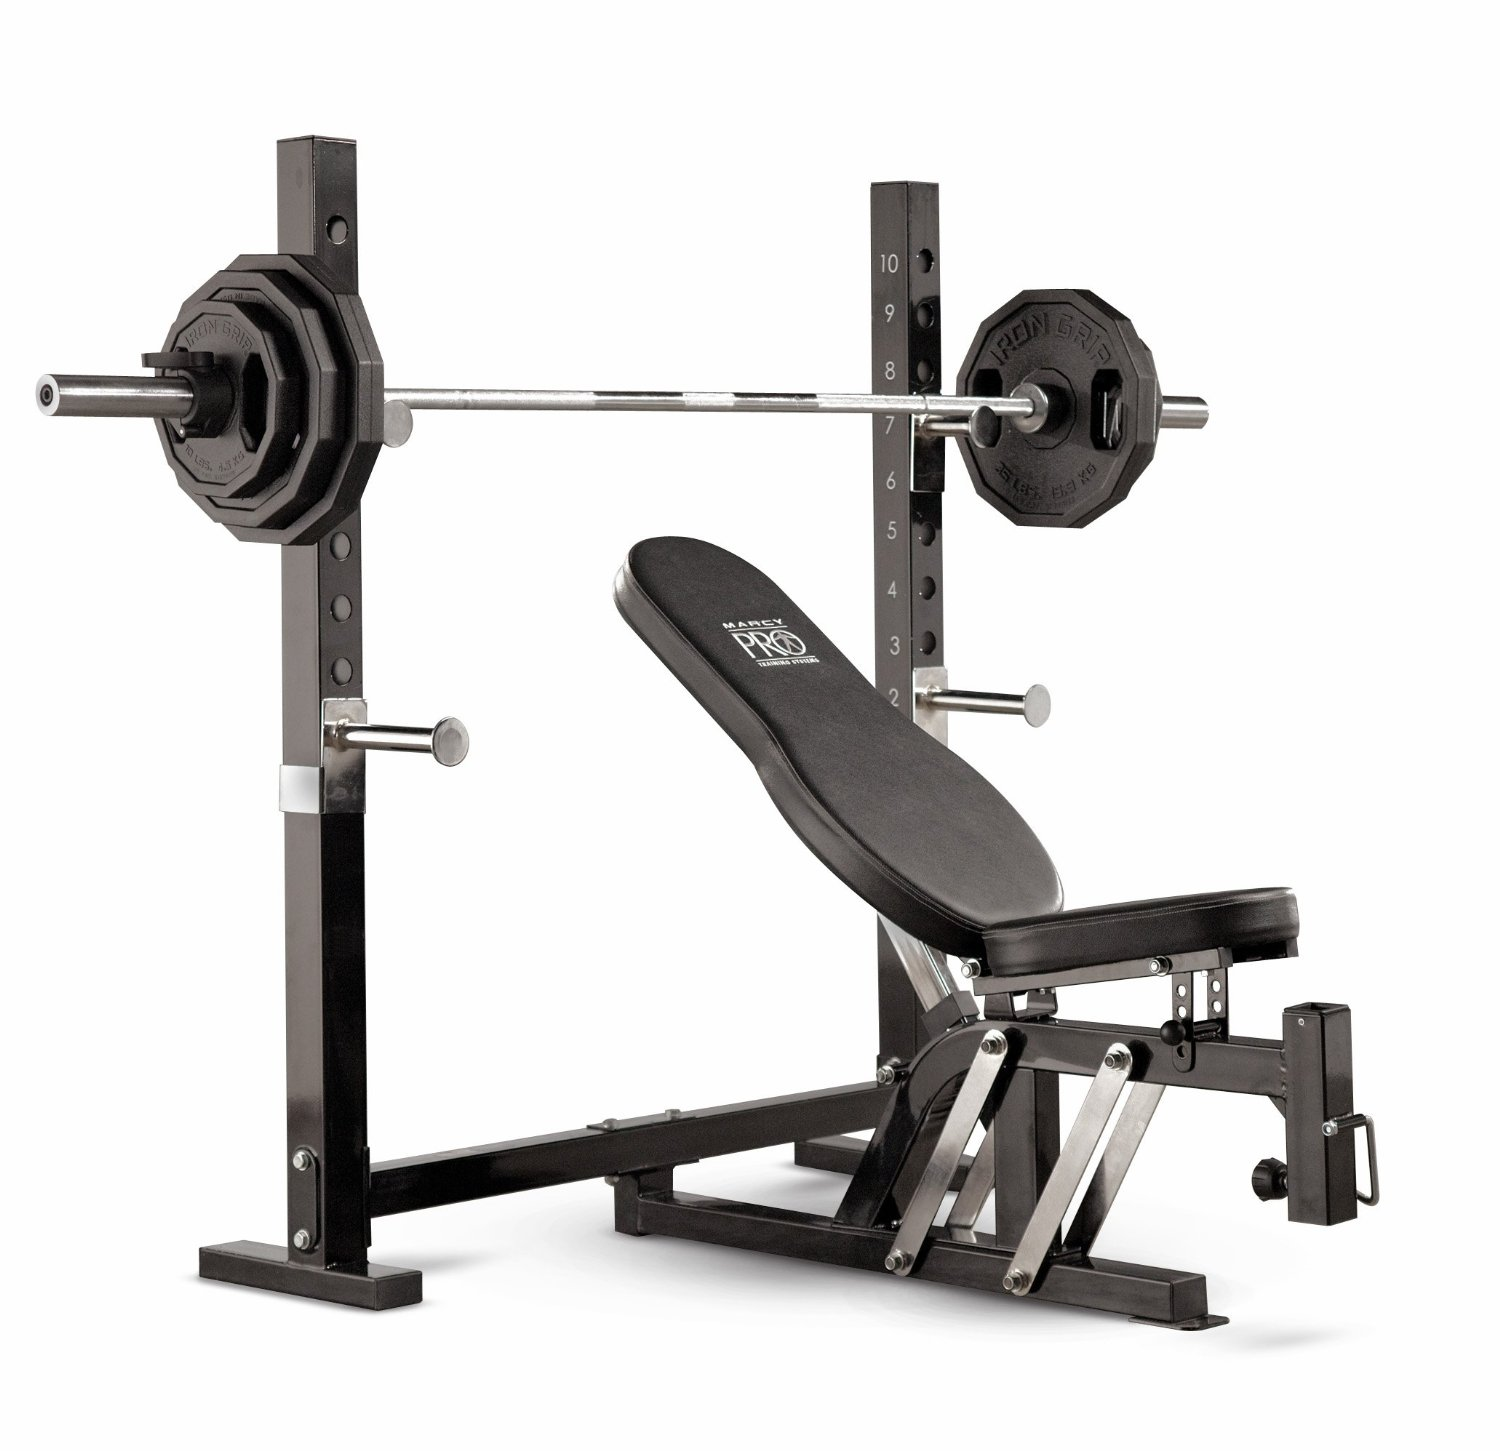 Marcy pro olympic bench review Bench weights